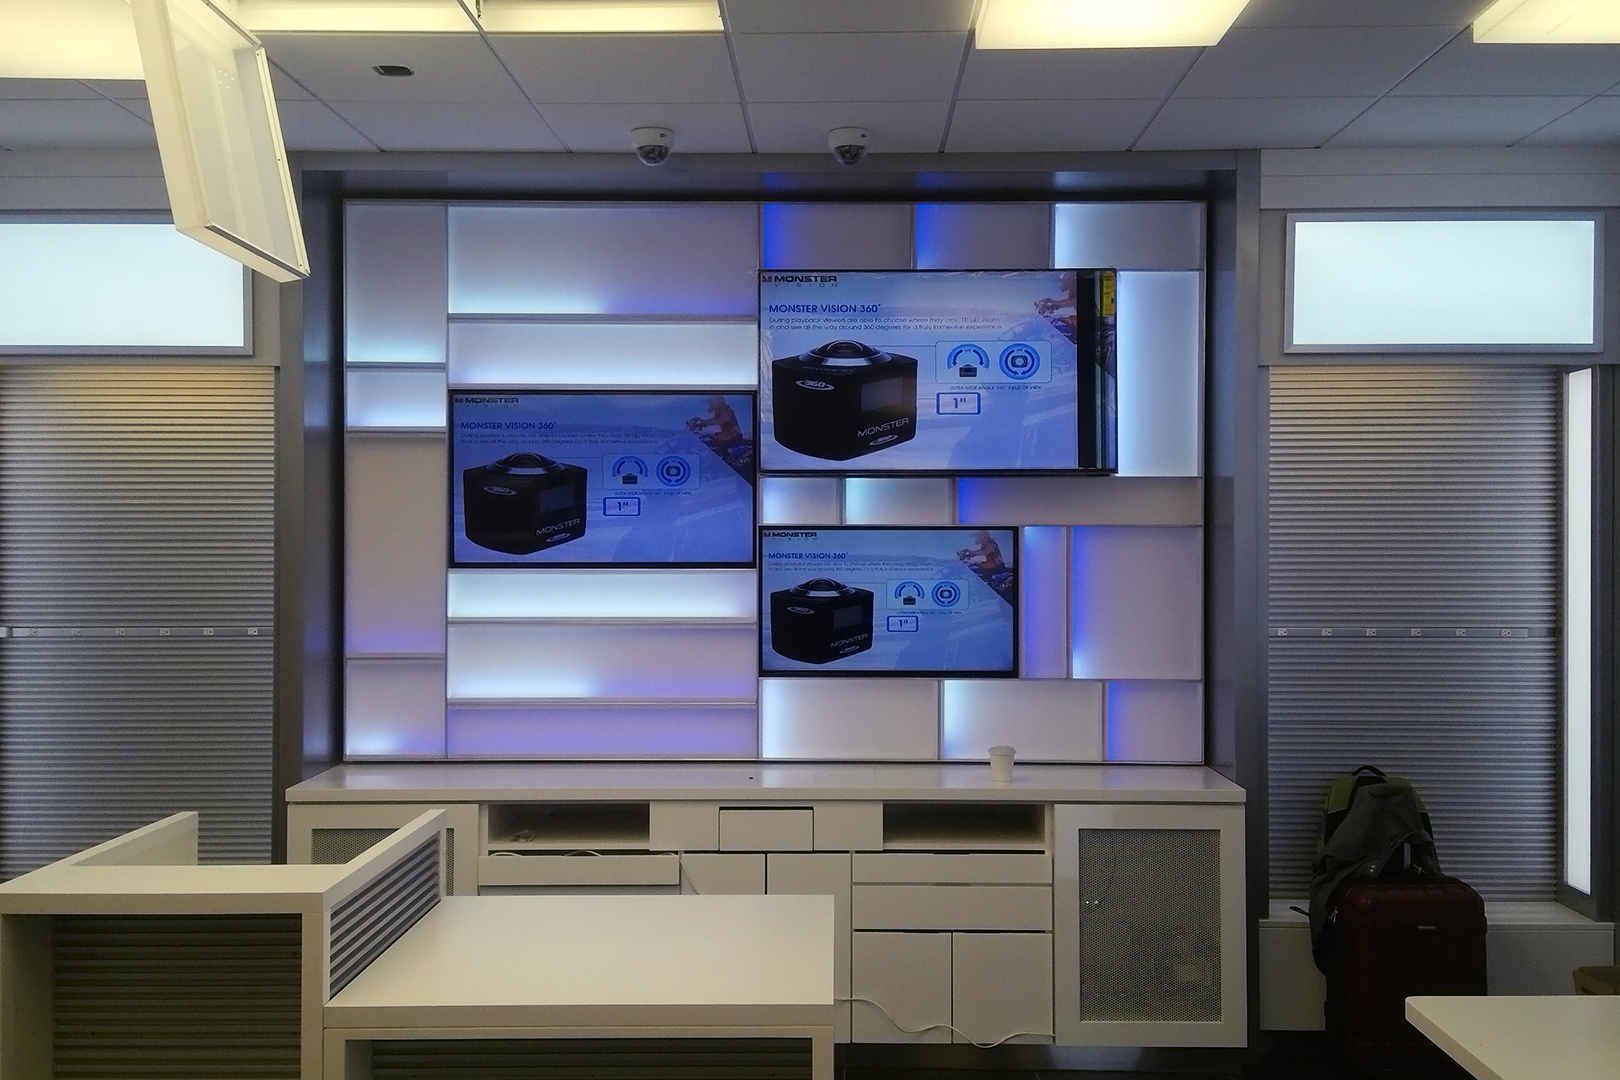 Tech on the go backlit wall fixtures and video screens.